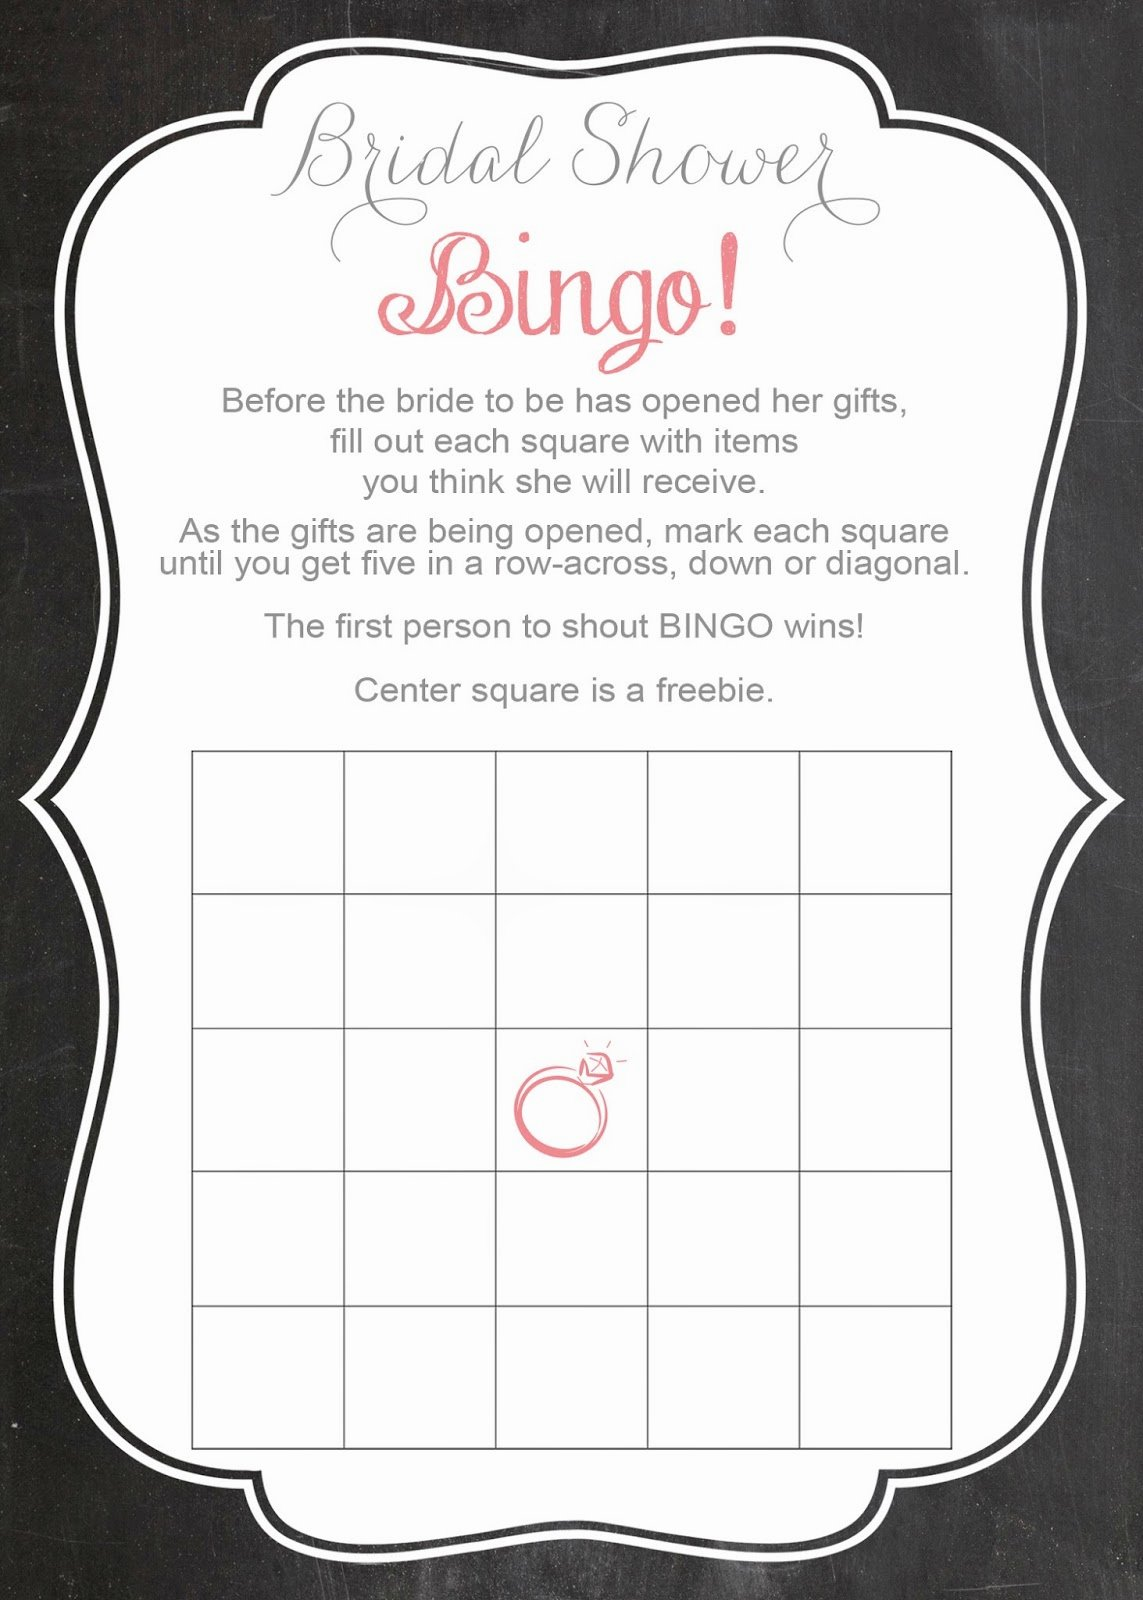 Bridal Shower Bingo Templates Elegant Savvy Deets Bridal Free Printable Bridal Shower Bingo